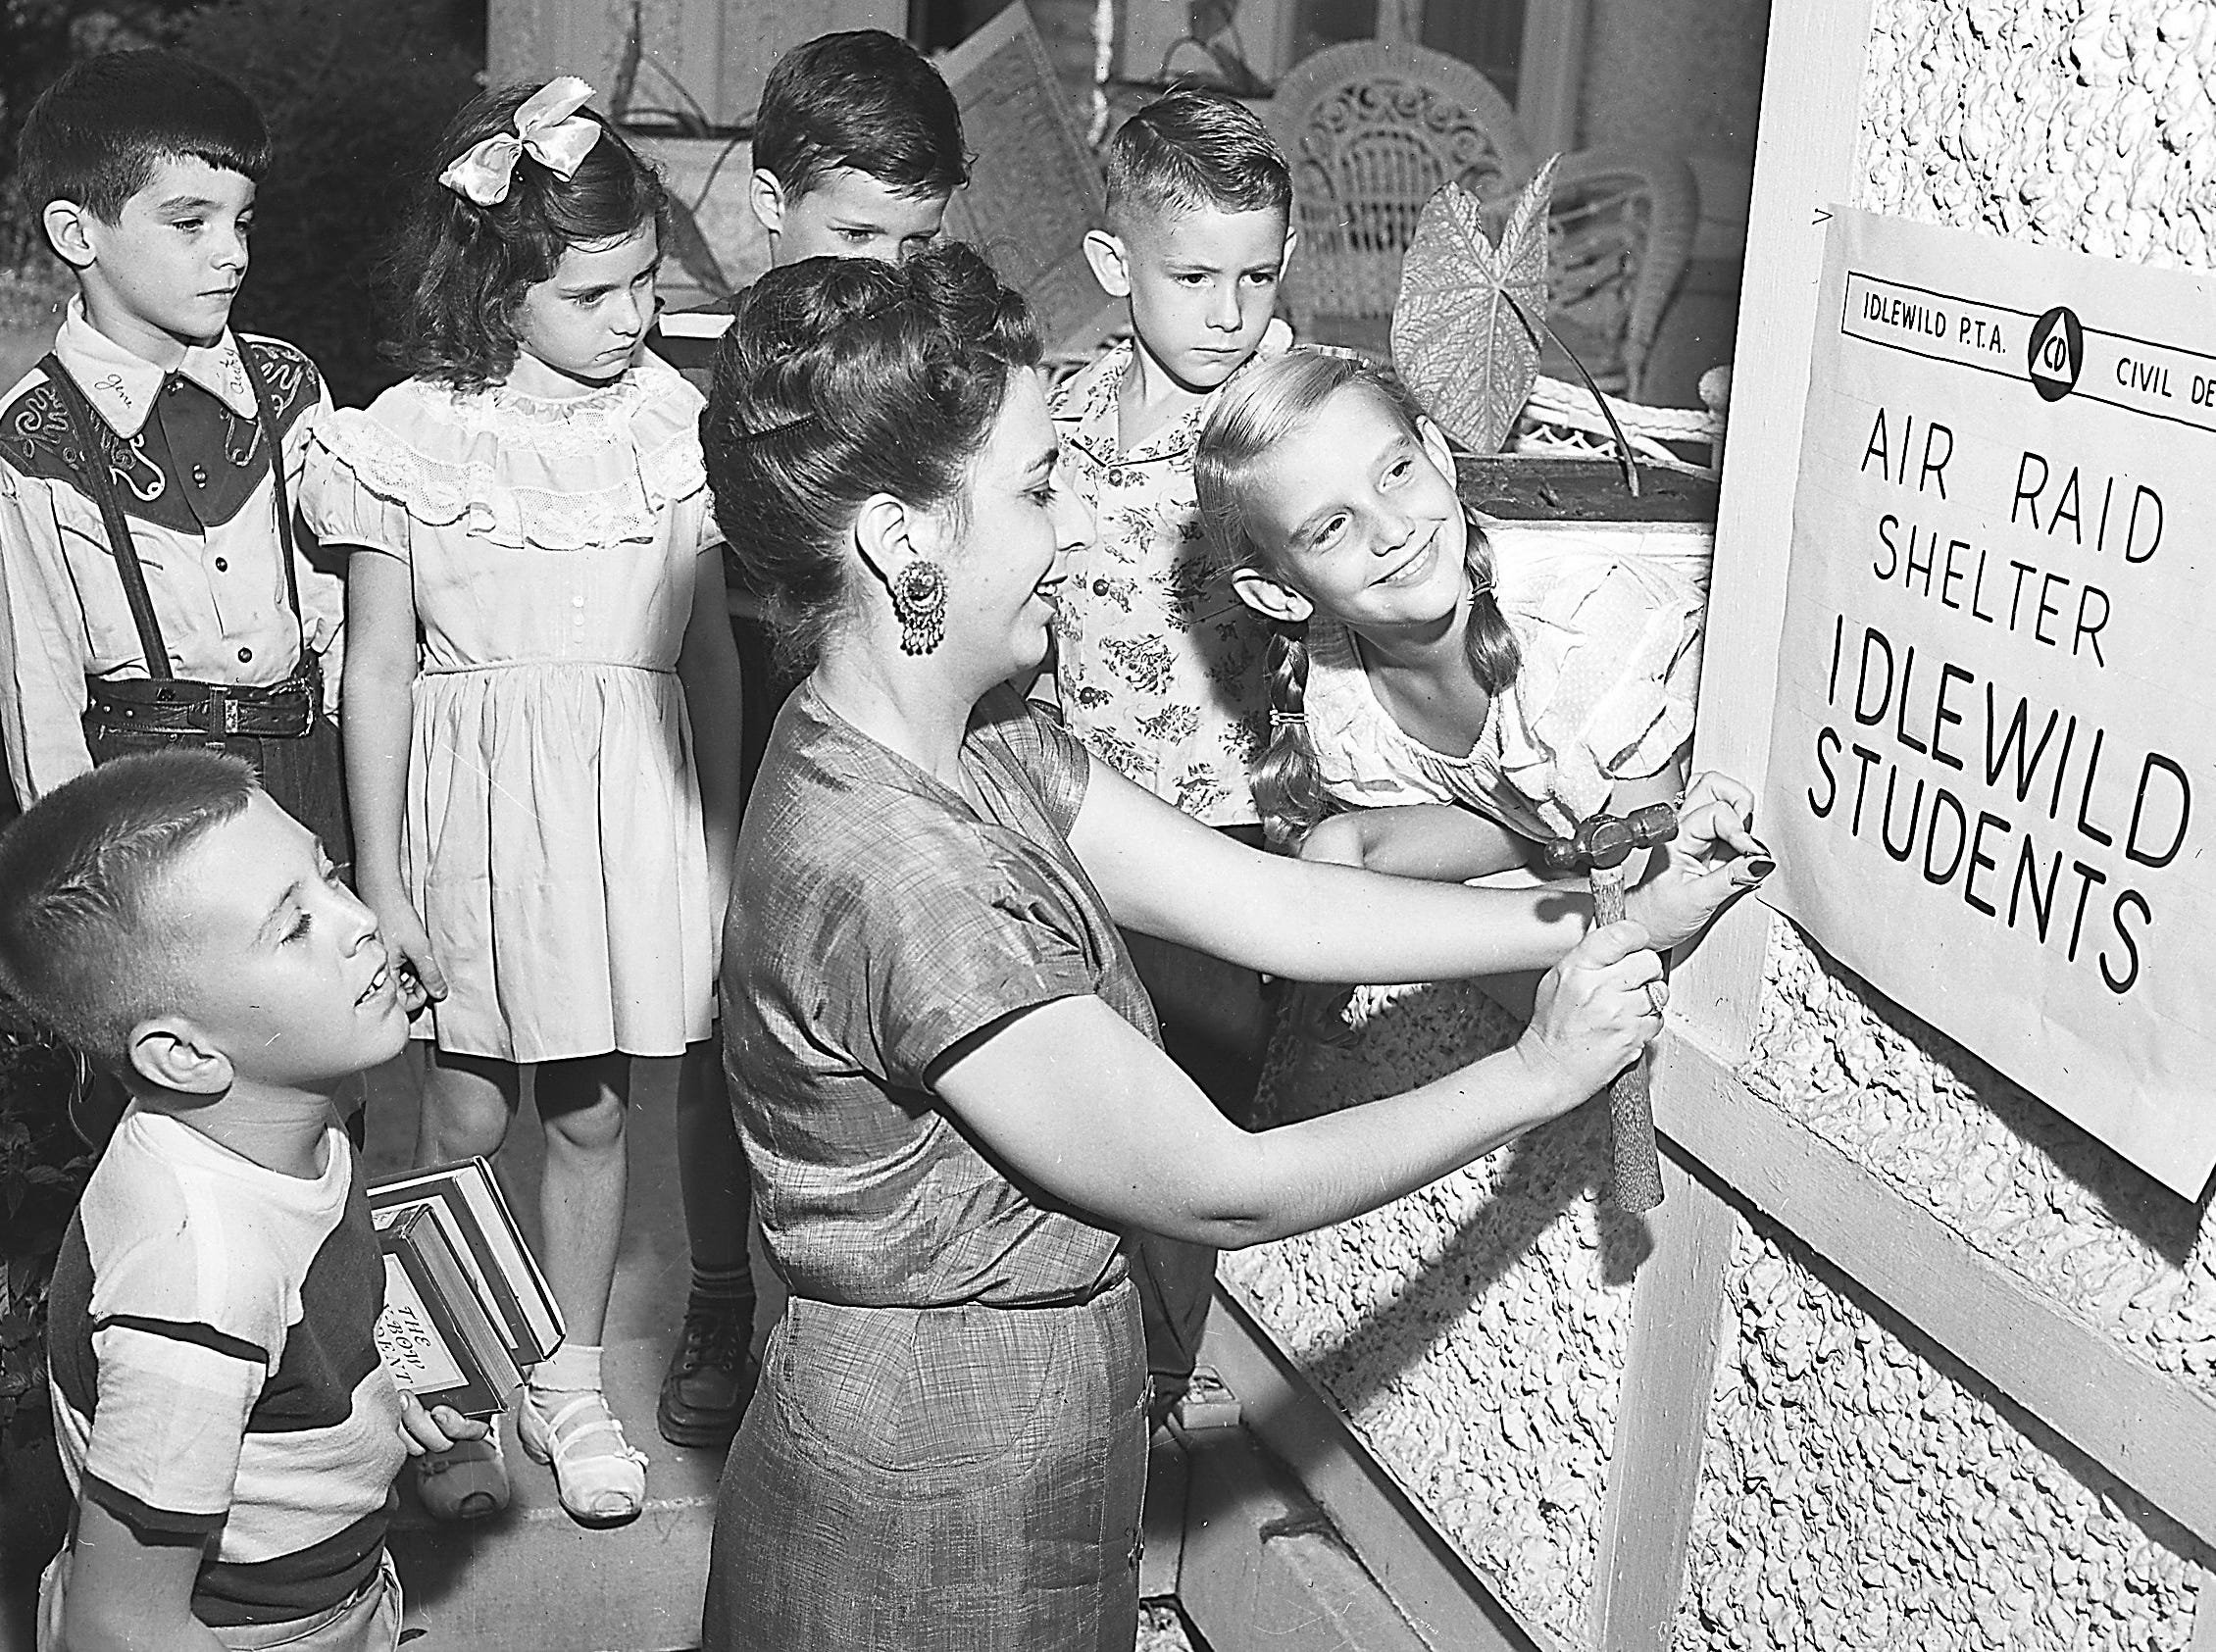 Mrs. Frank Murtaugh of 1845 Cowden, Idlewild P.T.A. member, tacks up a sign designating her home as an air raid shelter for Idlewild school children in case of atomic attack.  Watching the operation on 28 Sep 1951 are (Clockwise from Front Left)  Frank Murtaugh, 9, of 1845 Cowden; Randy Webb, 6, of 1867 Cowden; Patricia Ann Boro, 5, of 1854 Cowden; Jimmy McDonald, 6, of 1881 Cowden; Robert Lee Coker, 6, of 1877 Cowden and Judy Garrecht, 9, of 1834 Cowden.